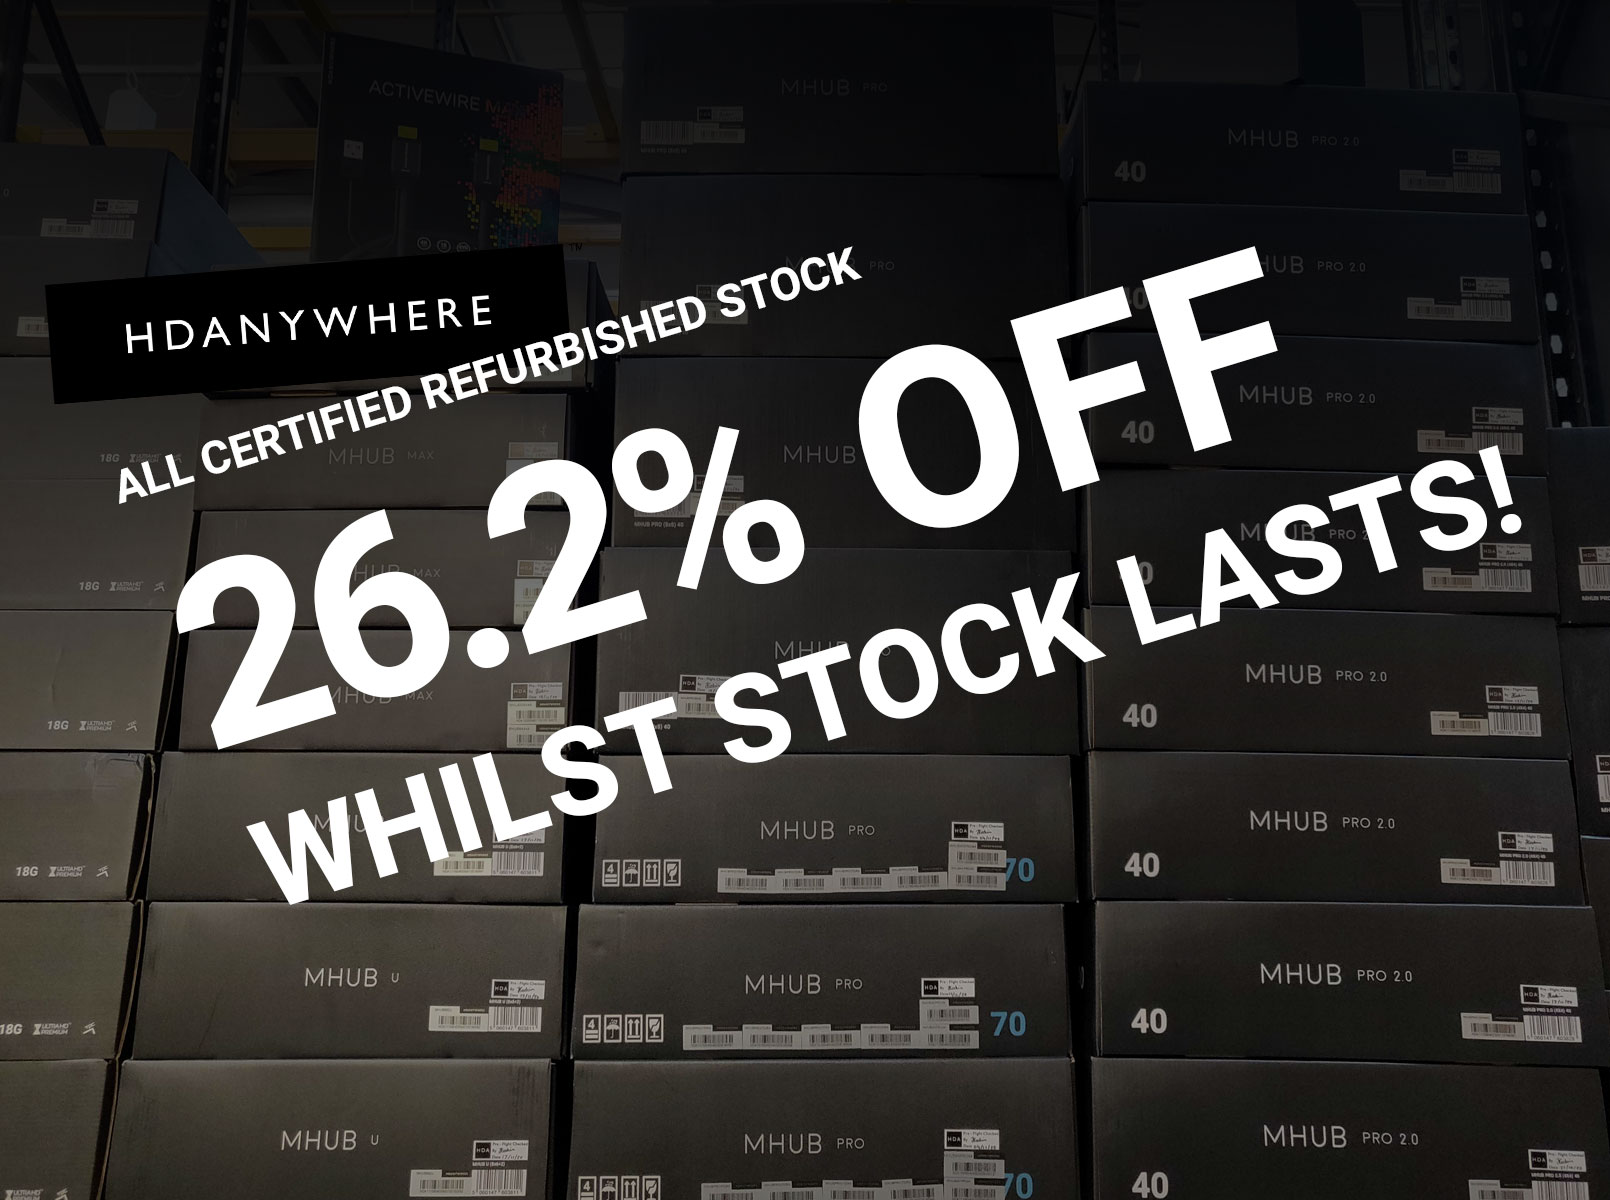 ALL refurb products are now reduced by a crazy 26.2%